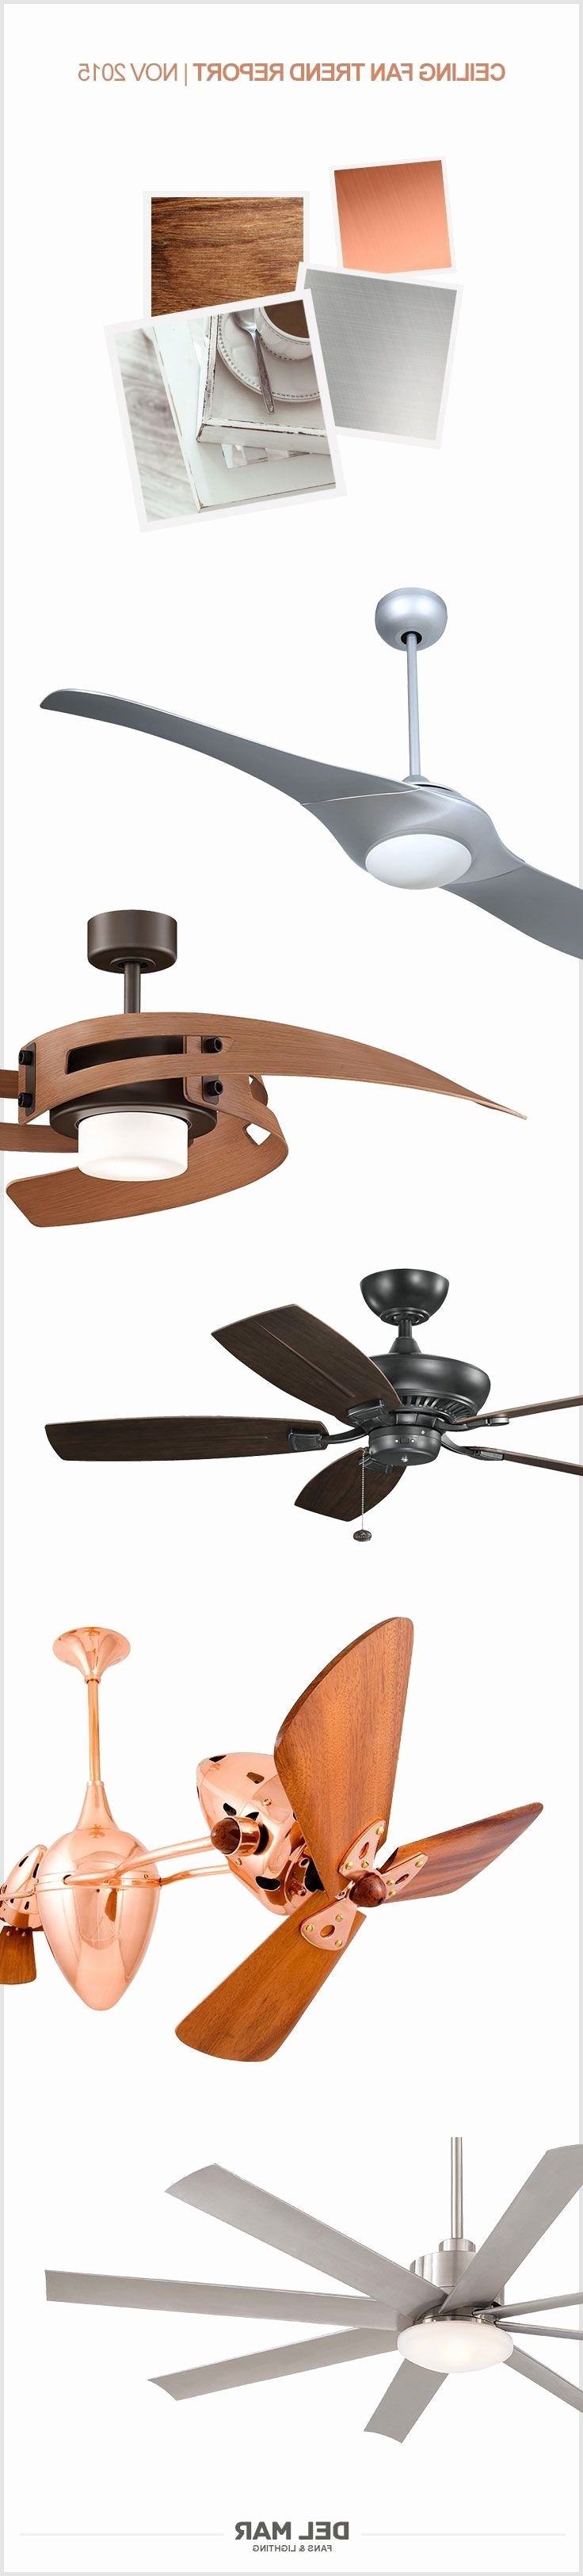 High Cfm Ceiling Fan Outdoor – Ceiling Design Ideas Regarding Fashionable Outdoor Ceiling Fans With High Cfm (View 6 of 20)